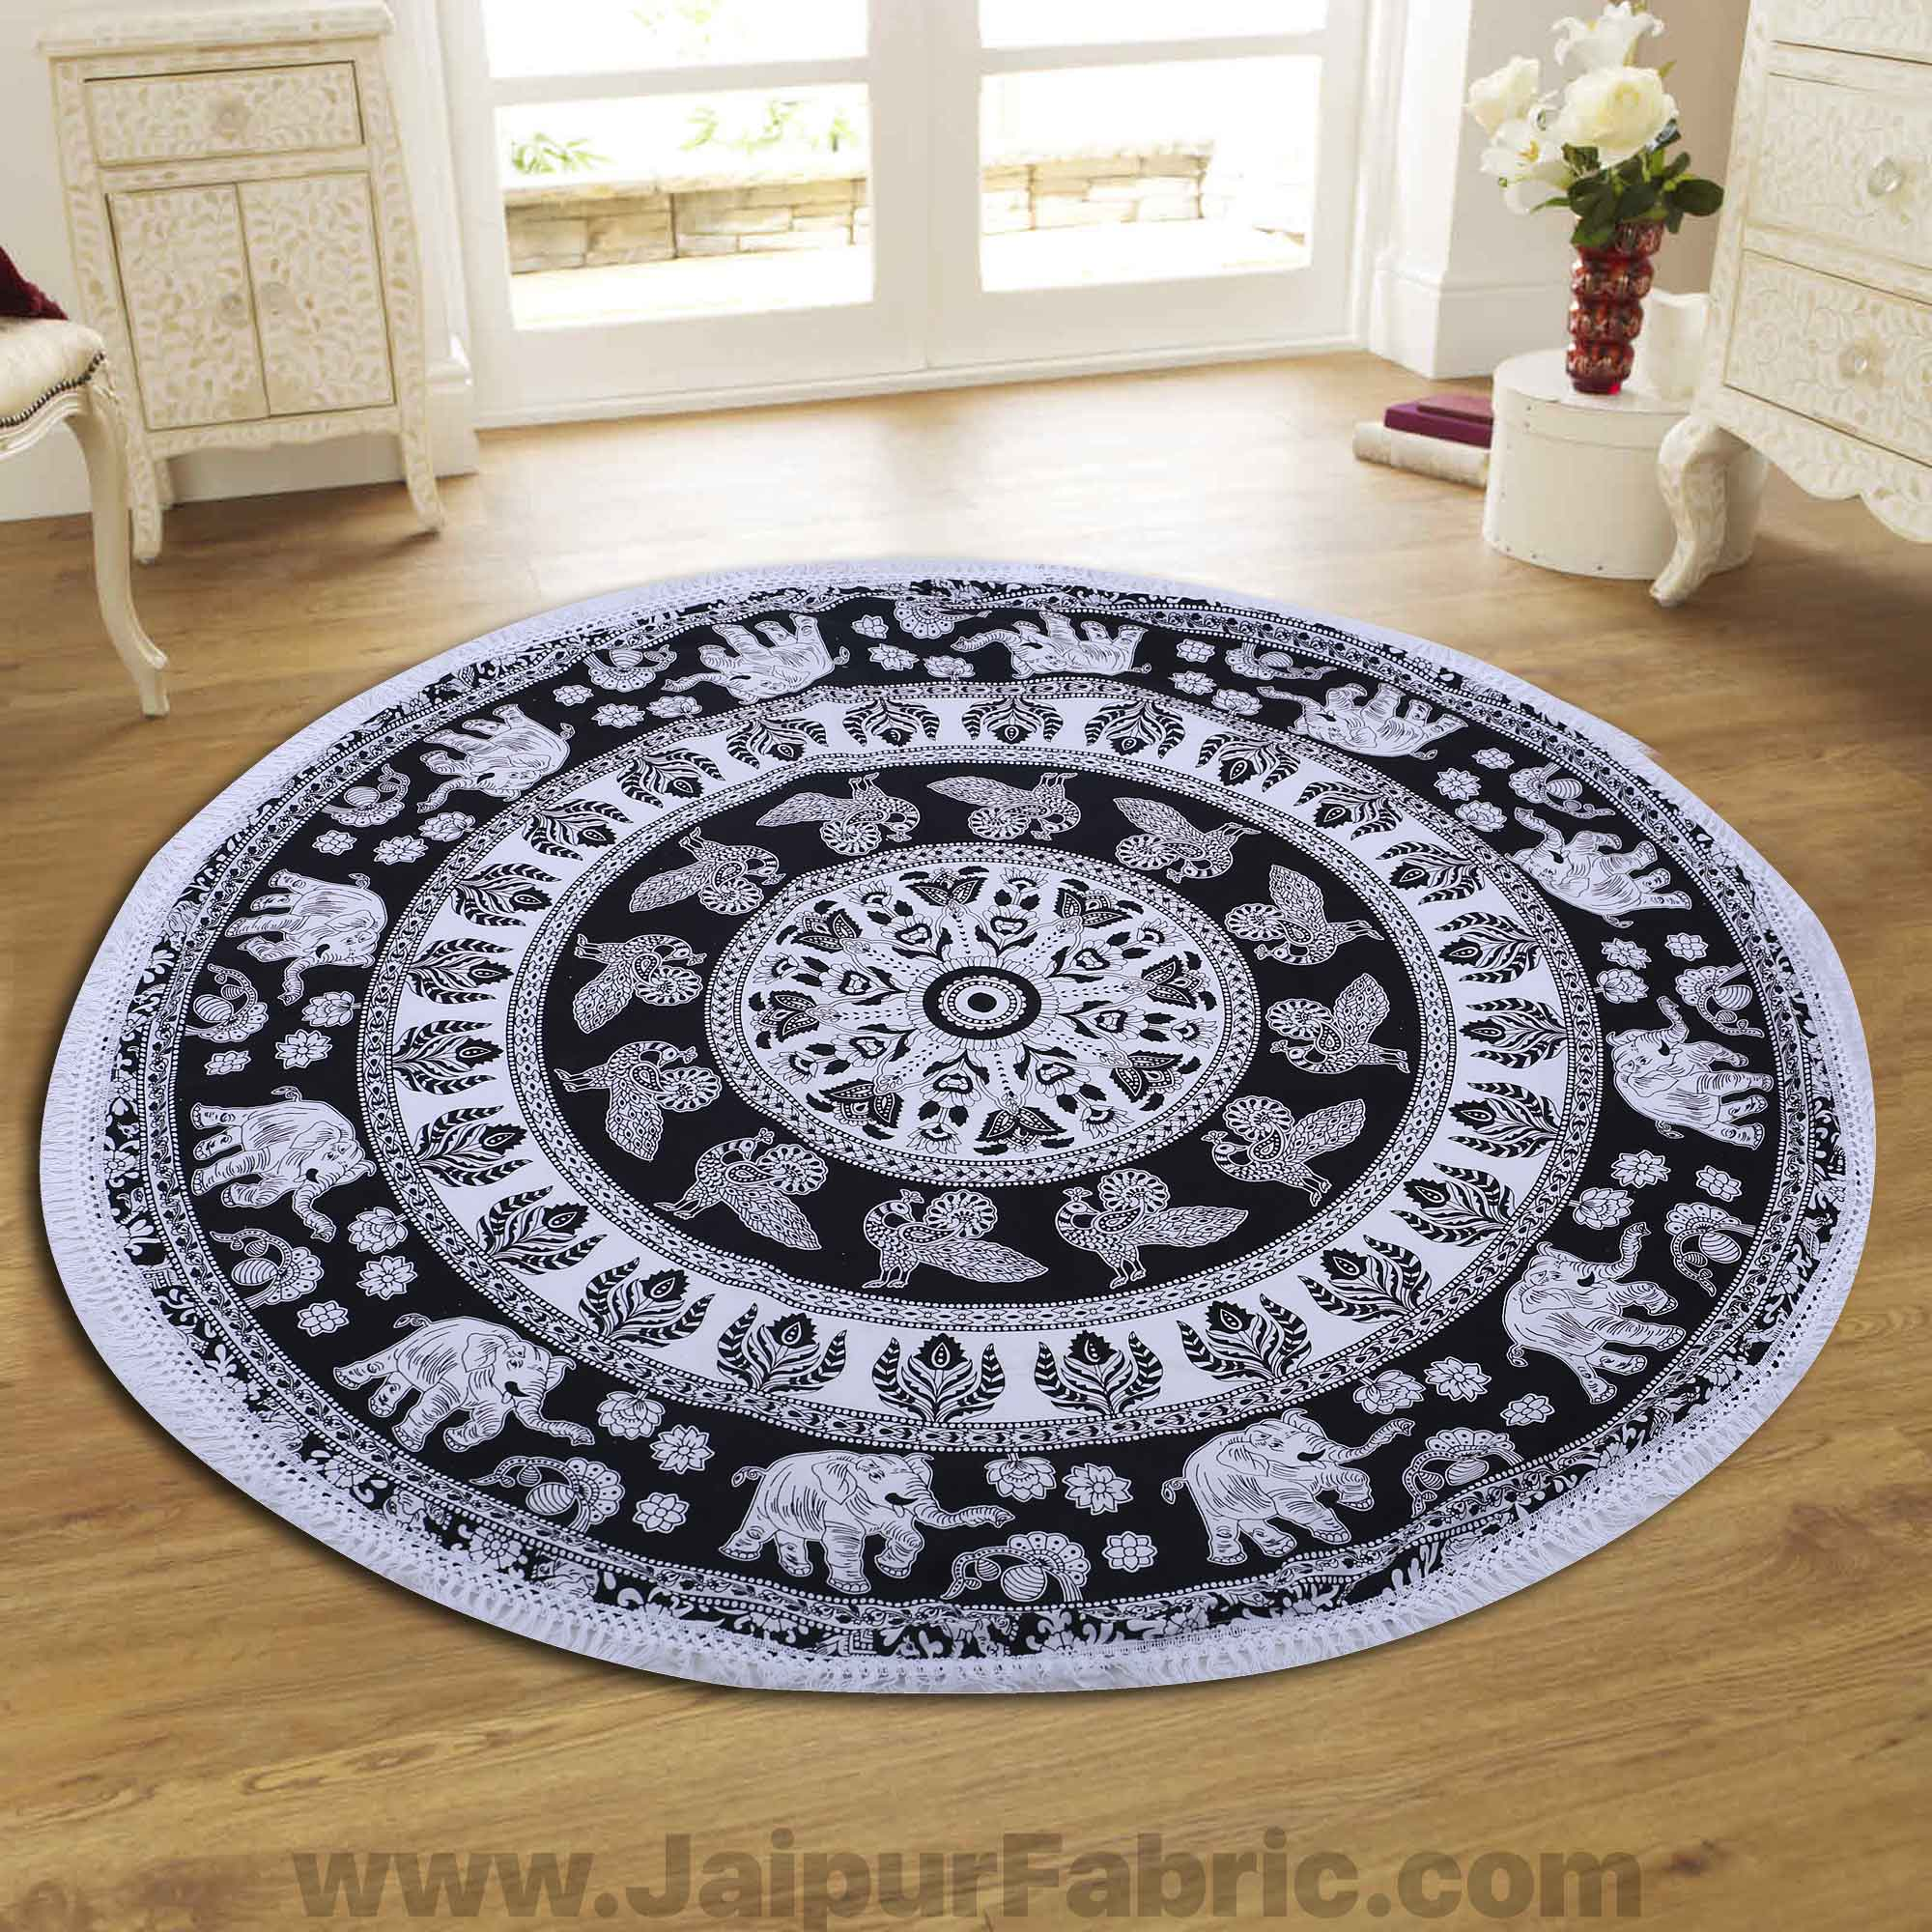 "Black Wall Hanging Round Roundies Beach Throw Cotton Yoga Mat Table Cloths Table Cover Picnic Mat Tapestry Picnic Blanket Mat 72"" by Handicraft-Palace"